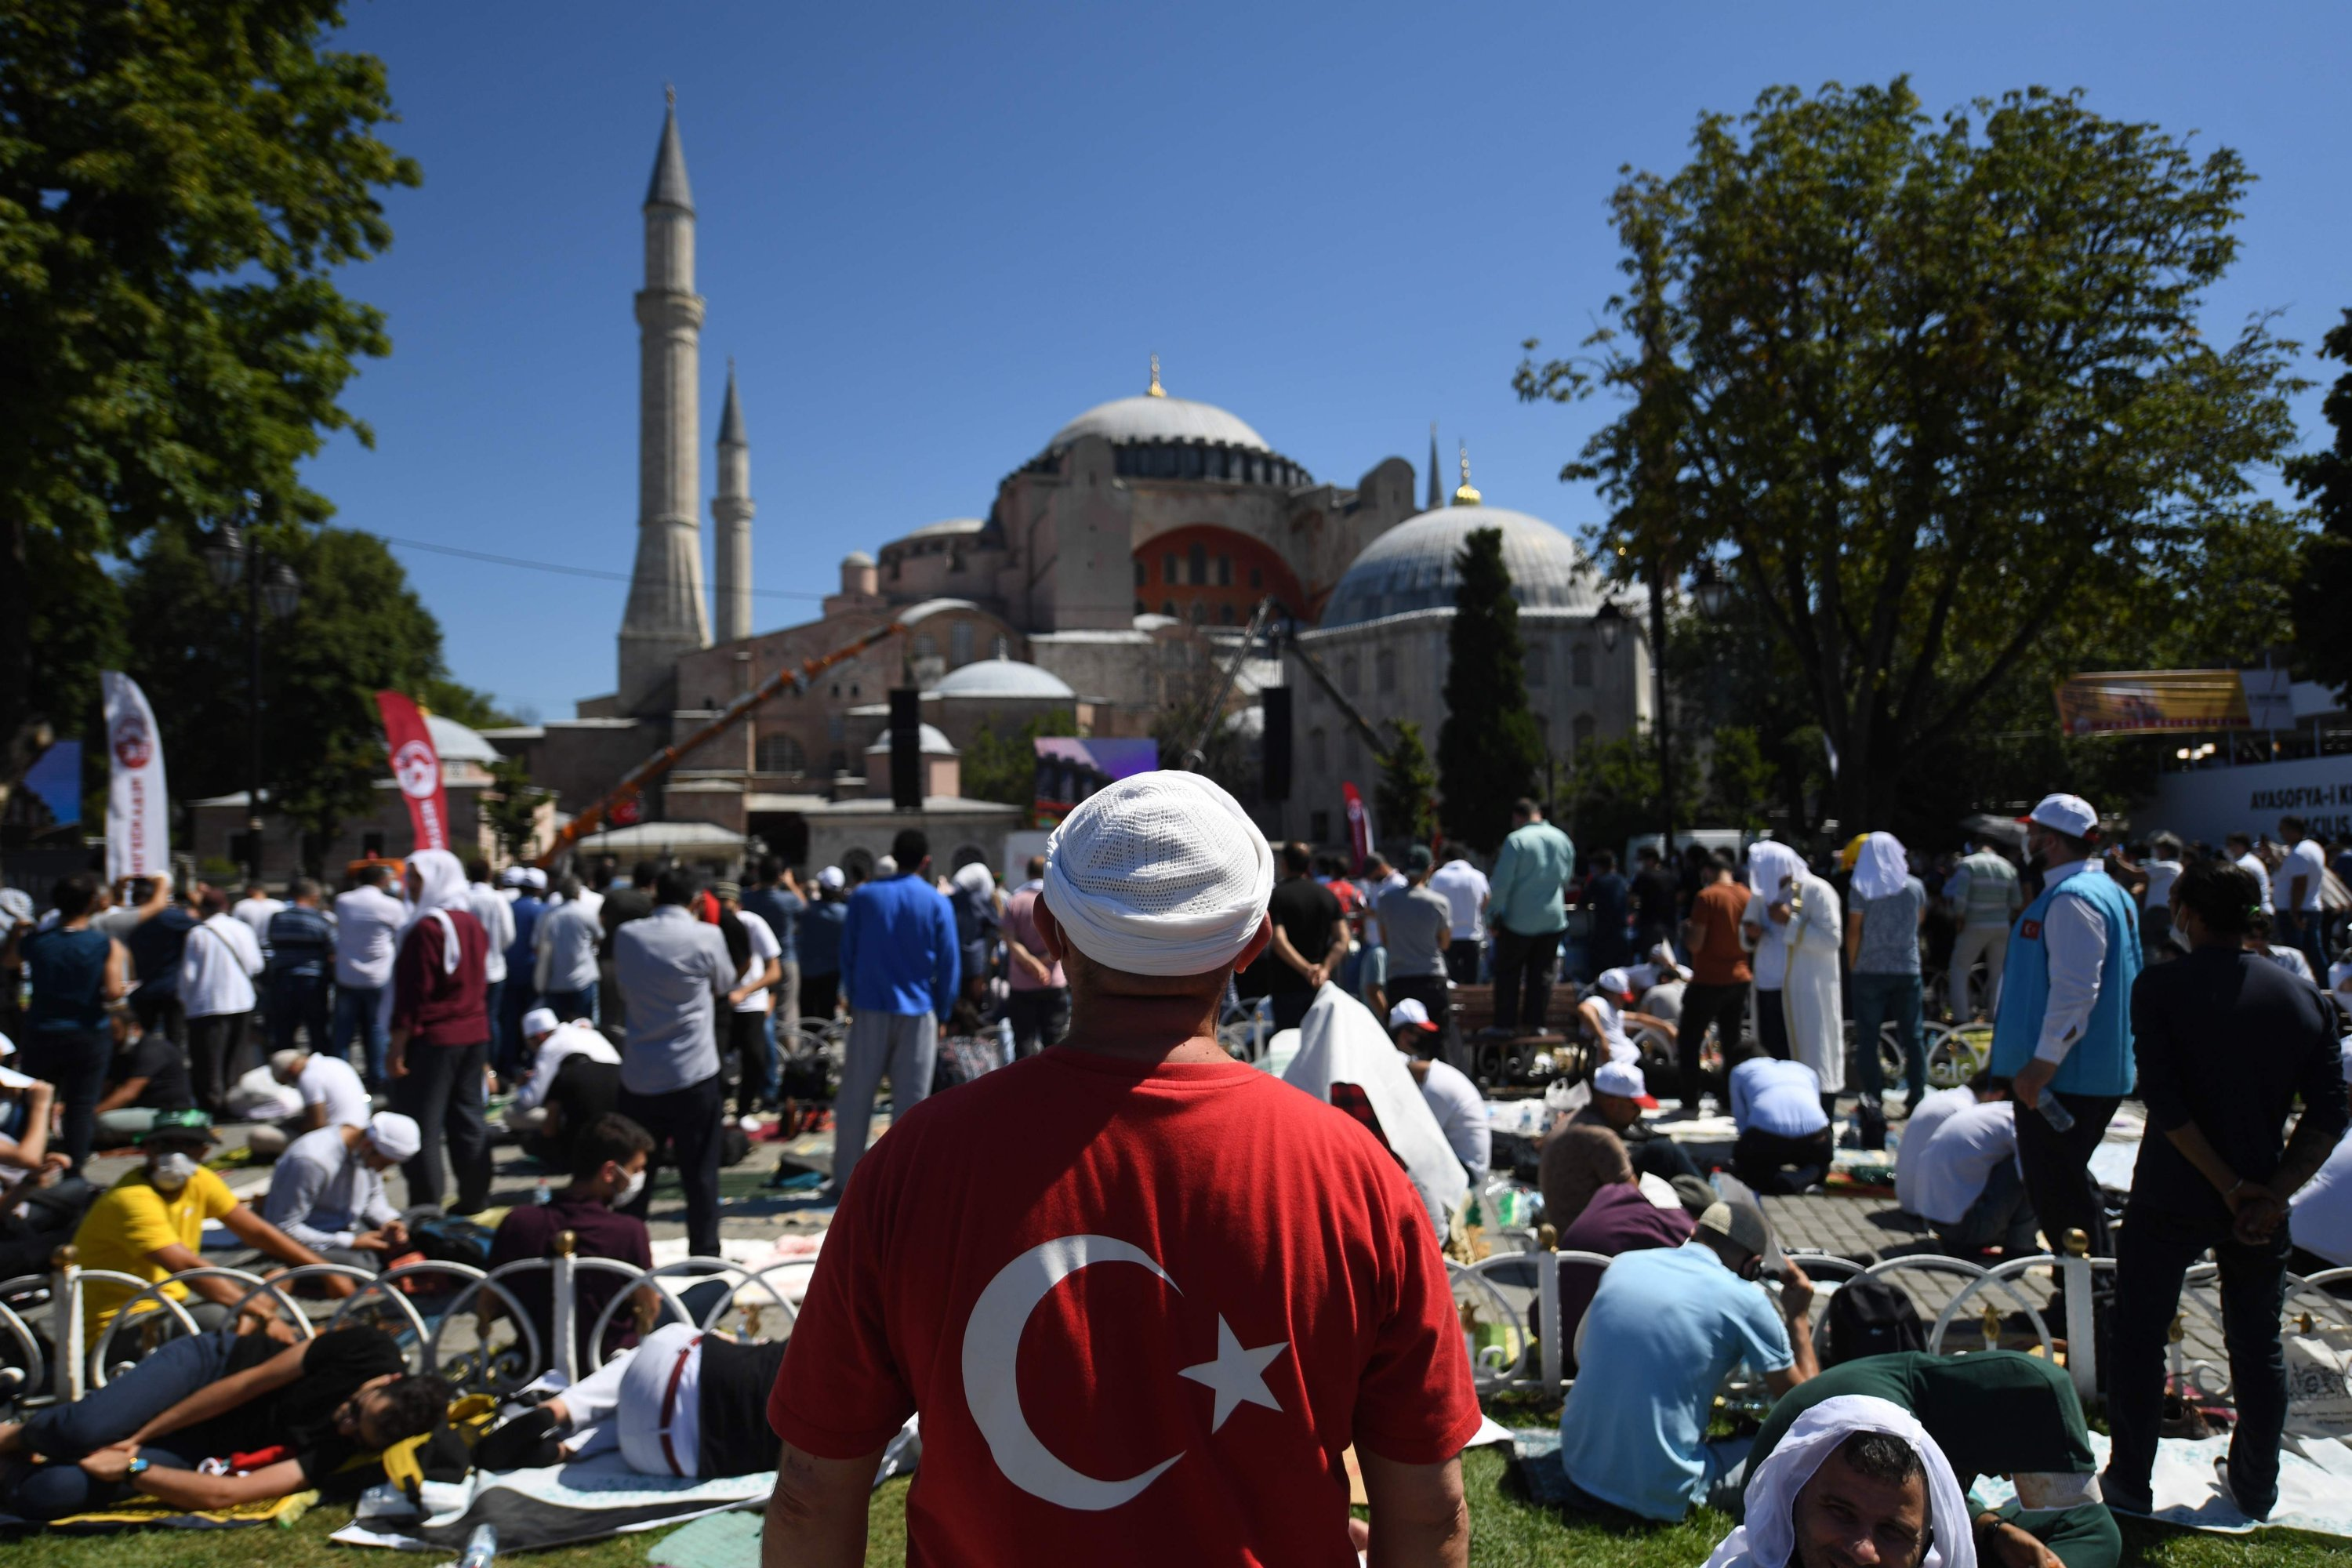 Men wait outside Hagia Sophia Grand Mosque in Istanbul to attend the Friday prayer, the first Muslim prayer held at the landmark since it was turned to a mosque, July 24, 2020. (AFP Photo)